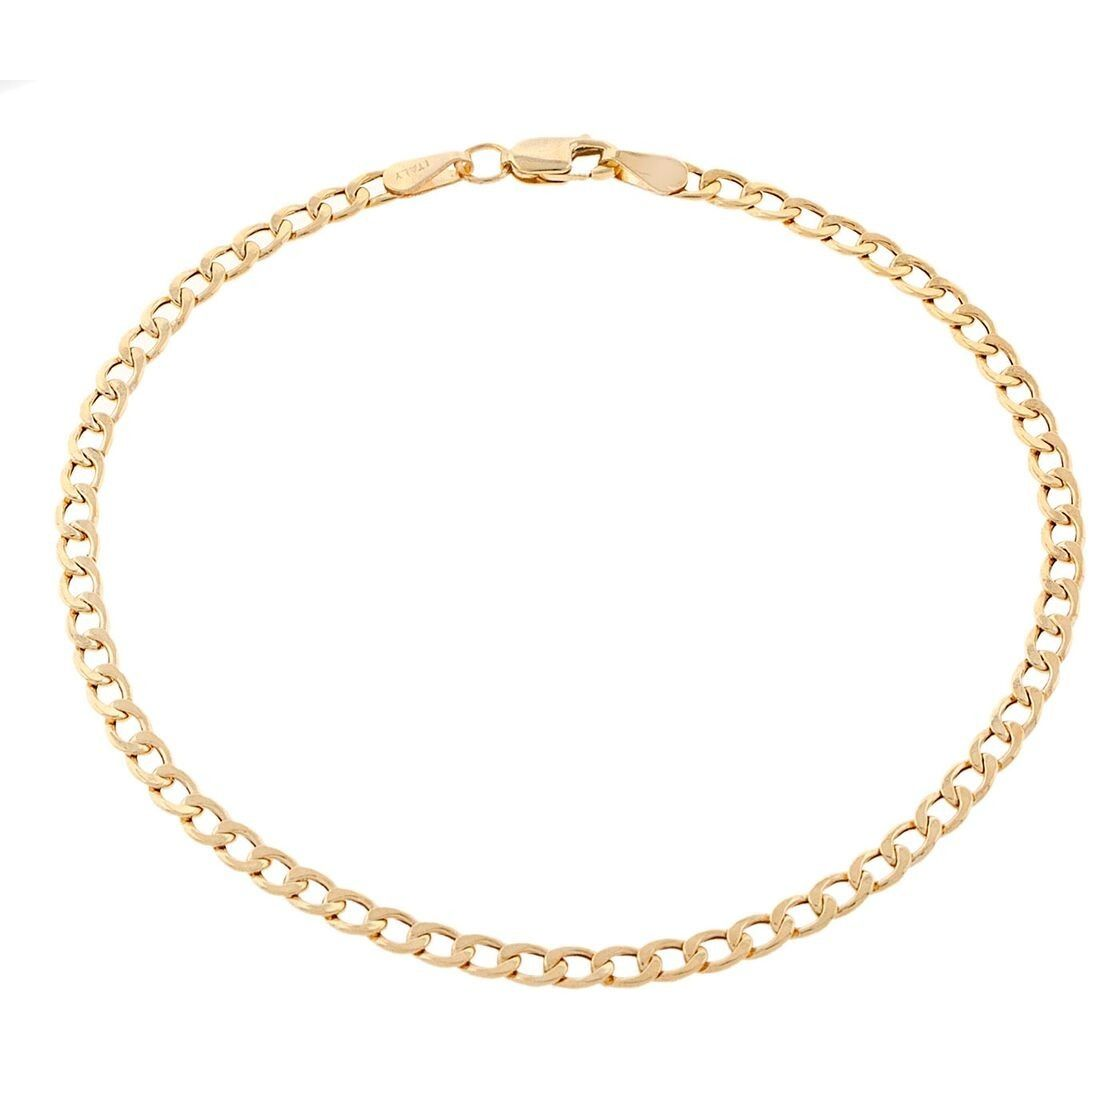 22a371a05 Pori Men's 10k Gold Cuban Chain Bracelet (Yellow), Size: 8 Inch ...